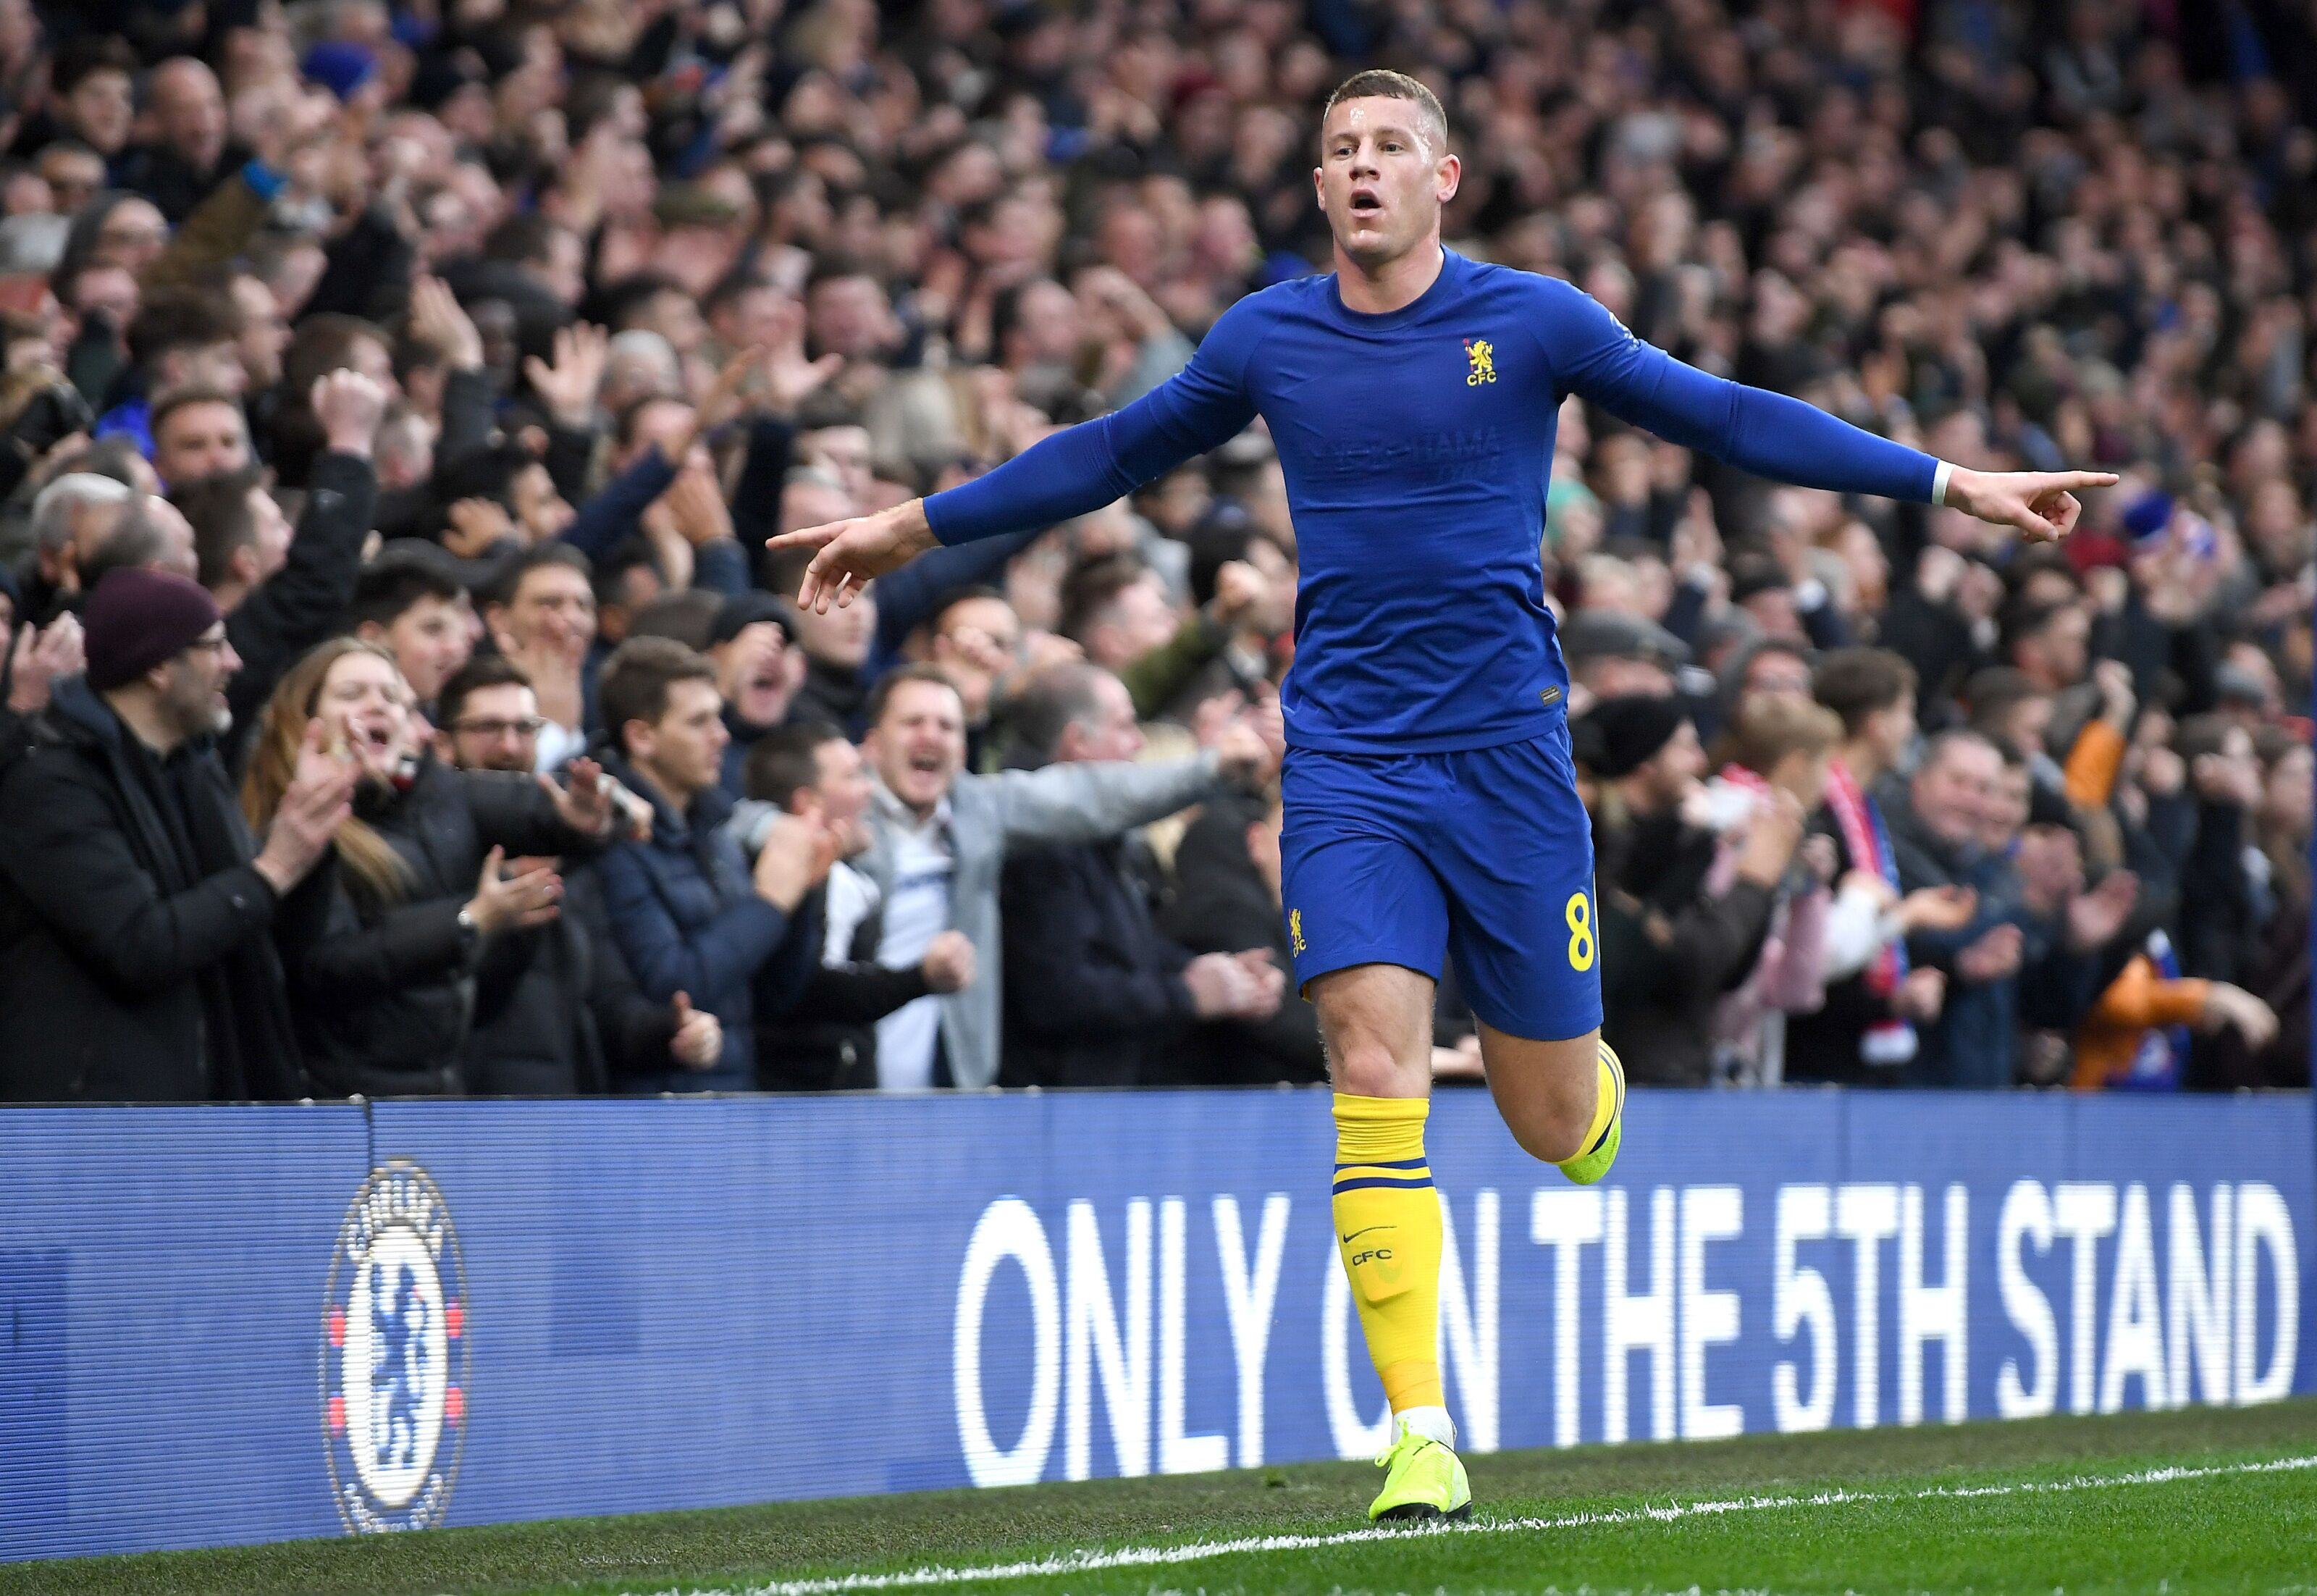 Would you take Ross Barkley on loan at West Ham United?